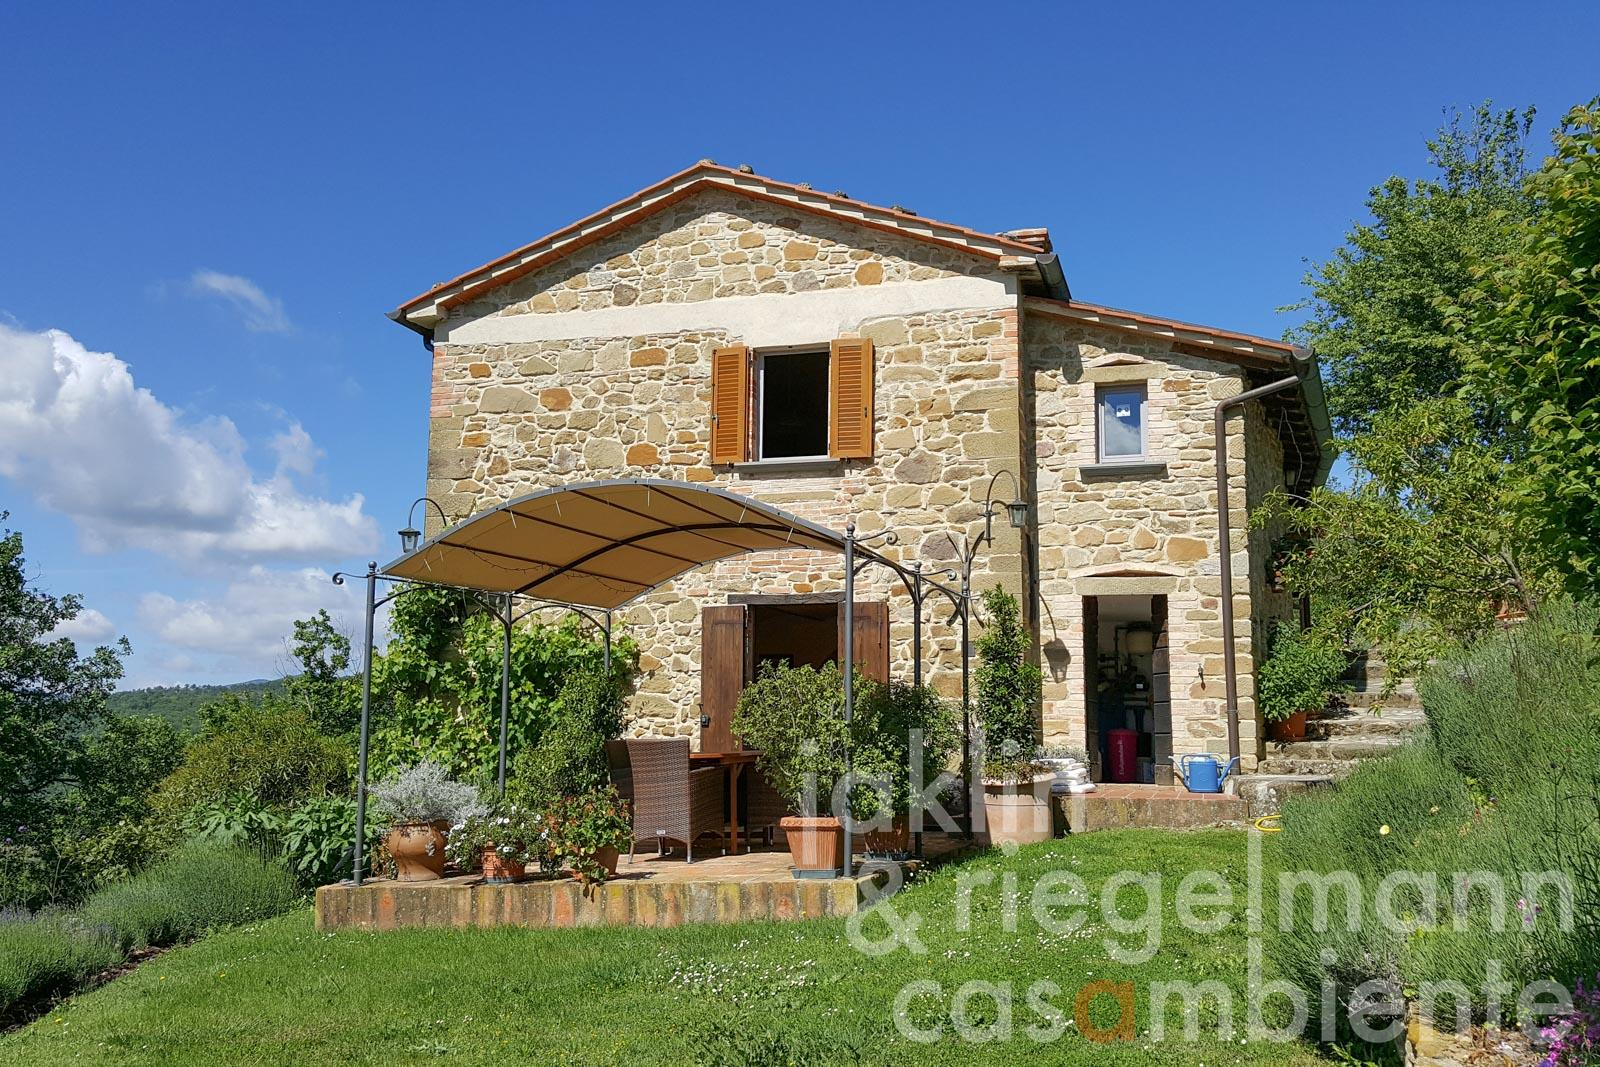 Stone-built farmhouse for sale with guest house, solar heated pool and lush gardens in Umbria